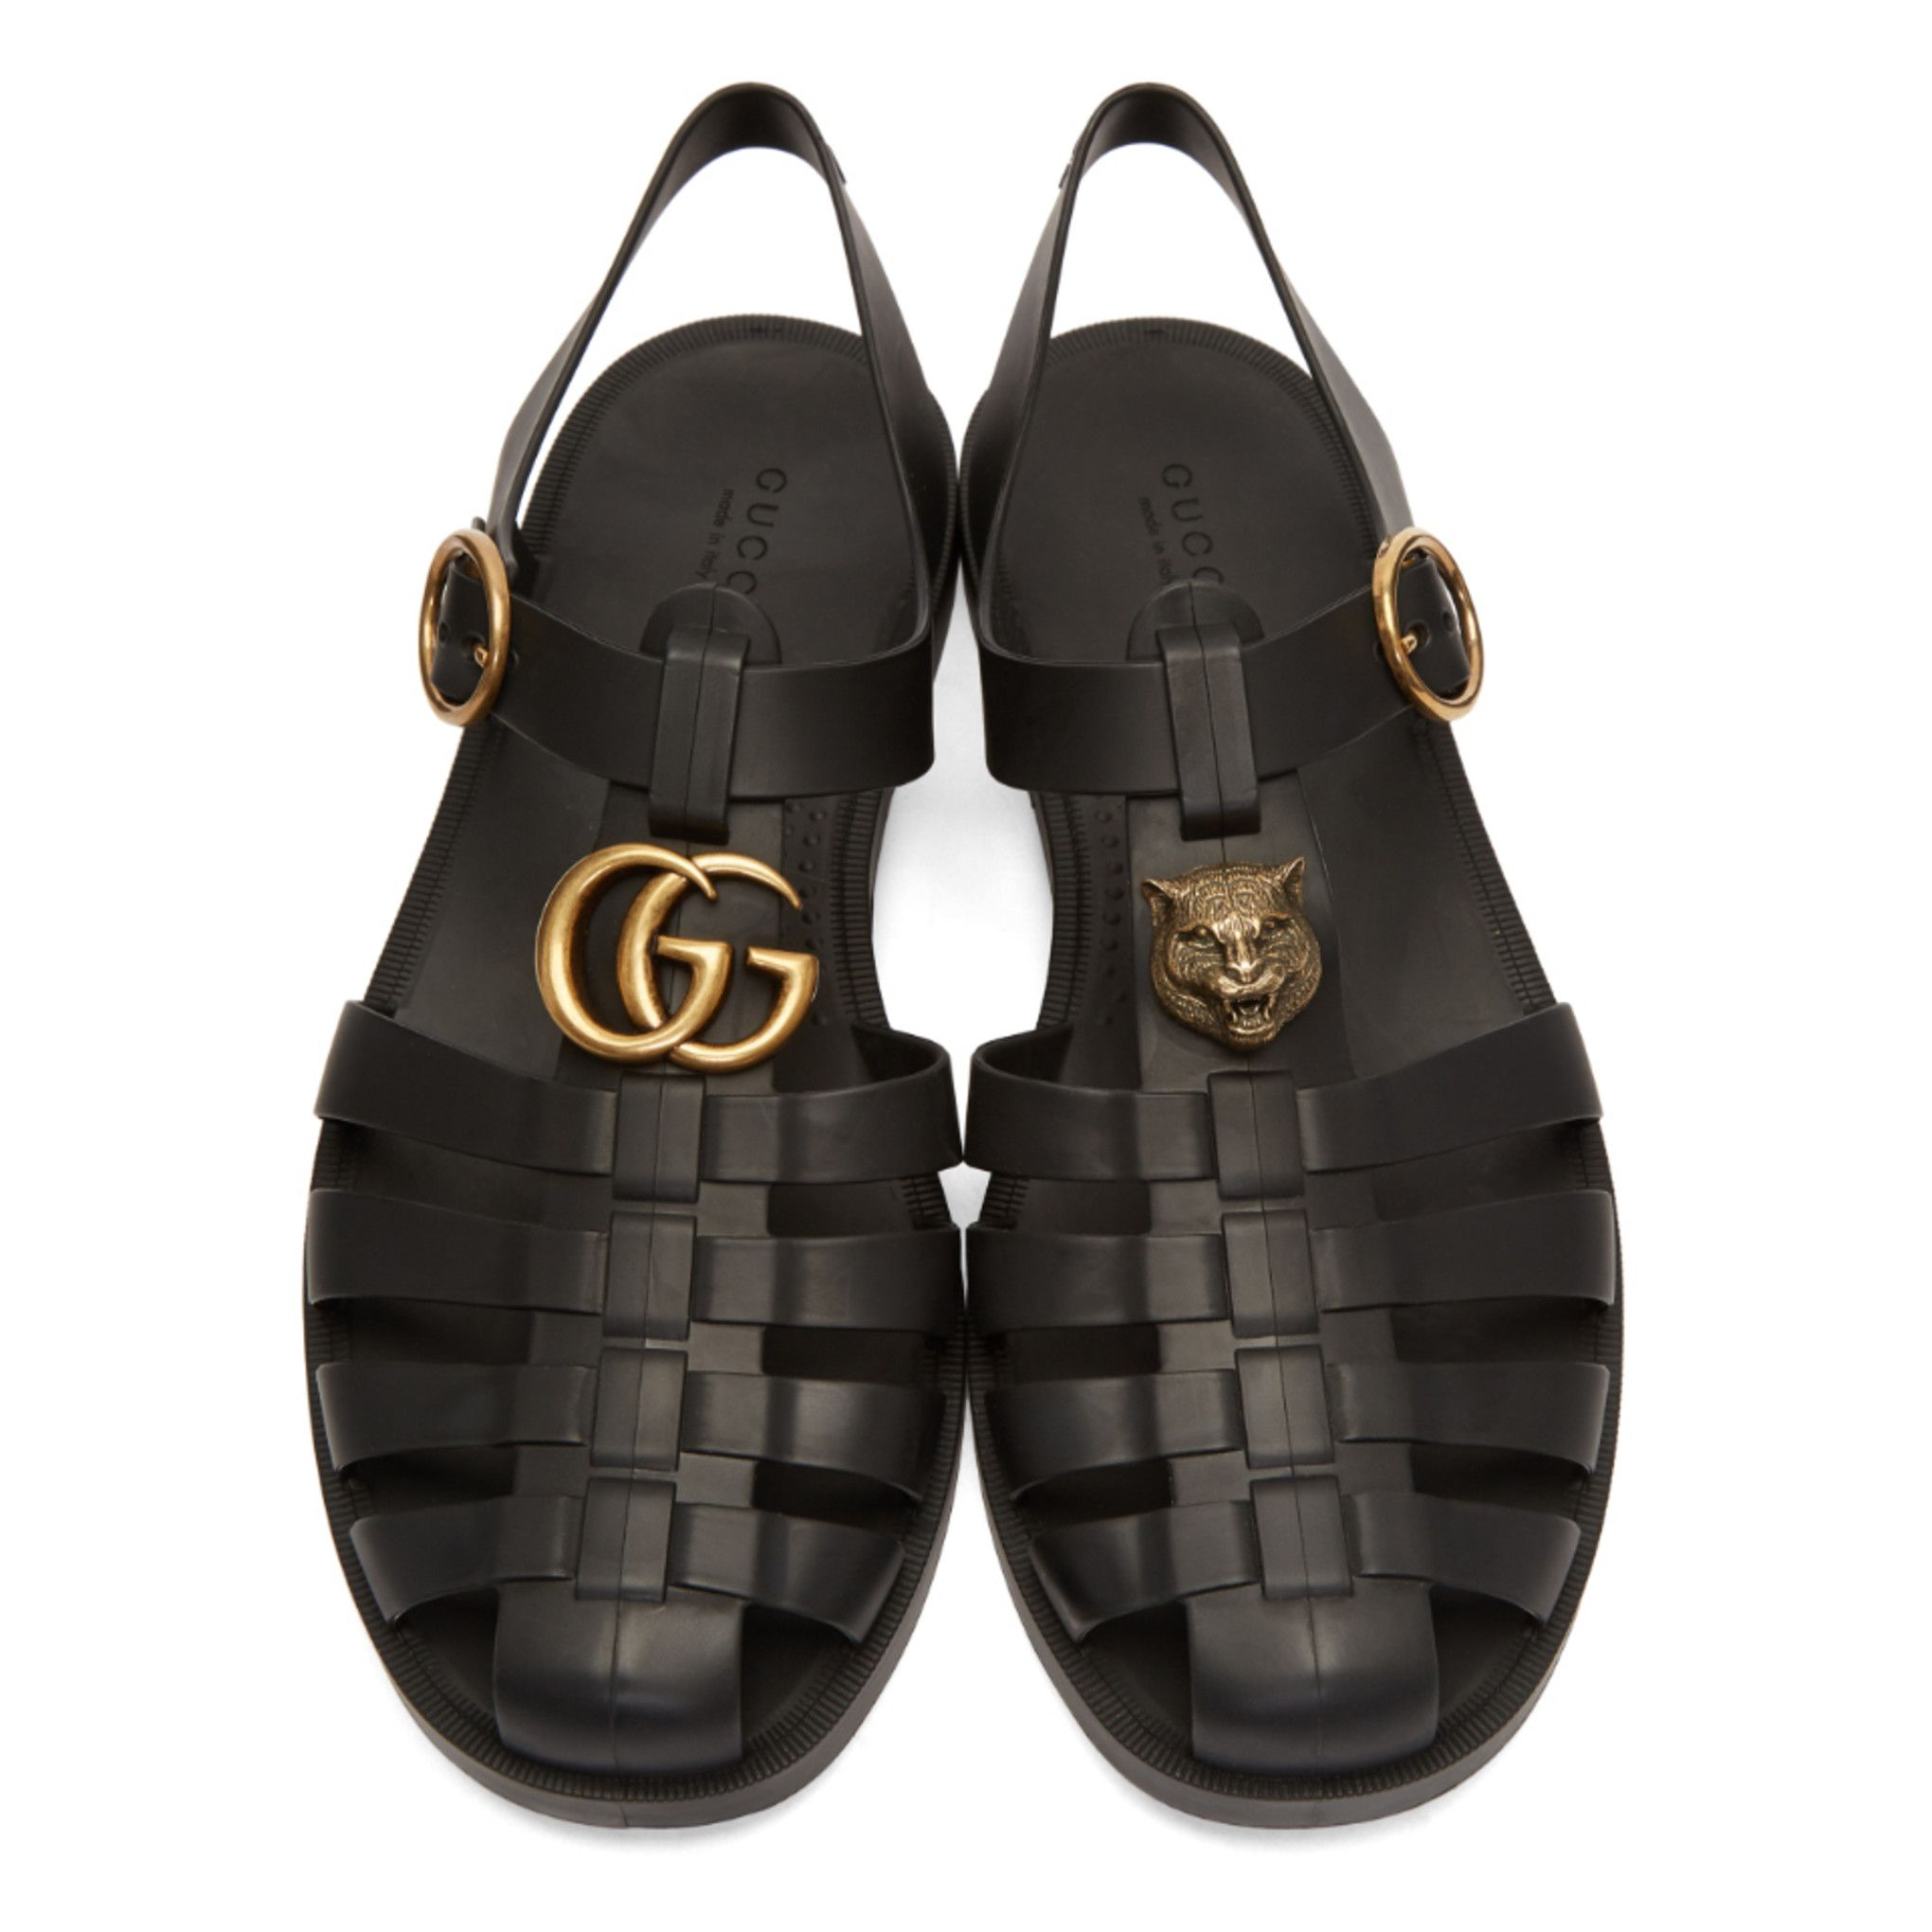 Gucci Black Glossy Rubber Sandals Mens Uggs Sandal Fashion Studded Sandals